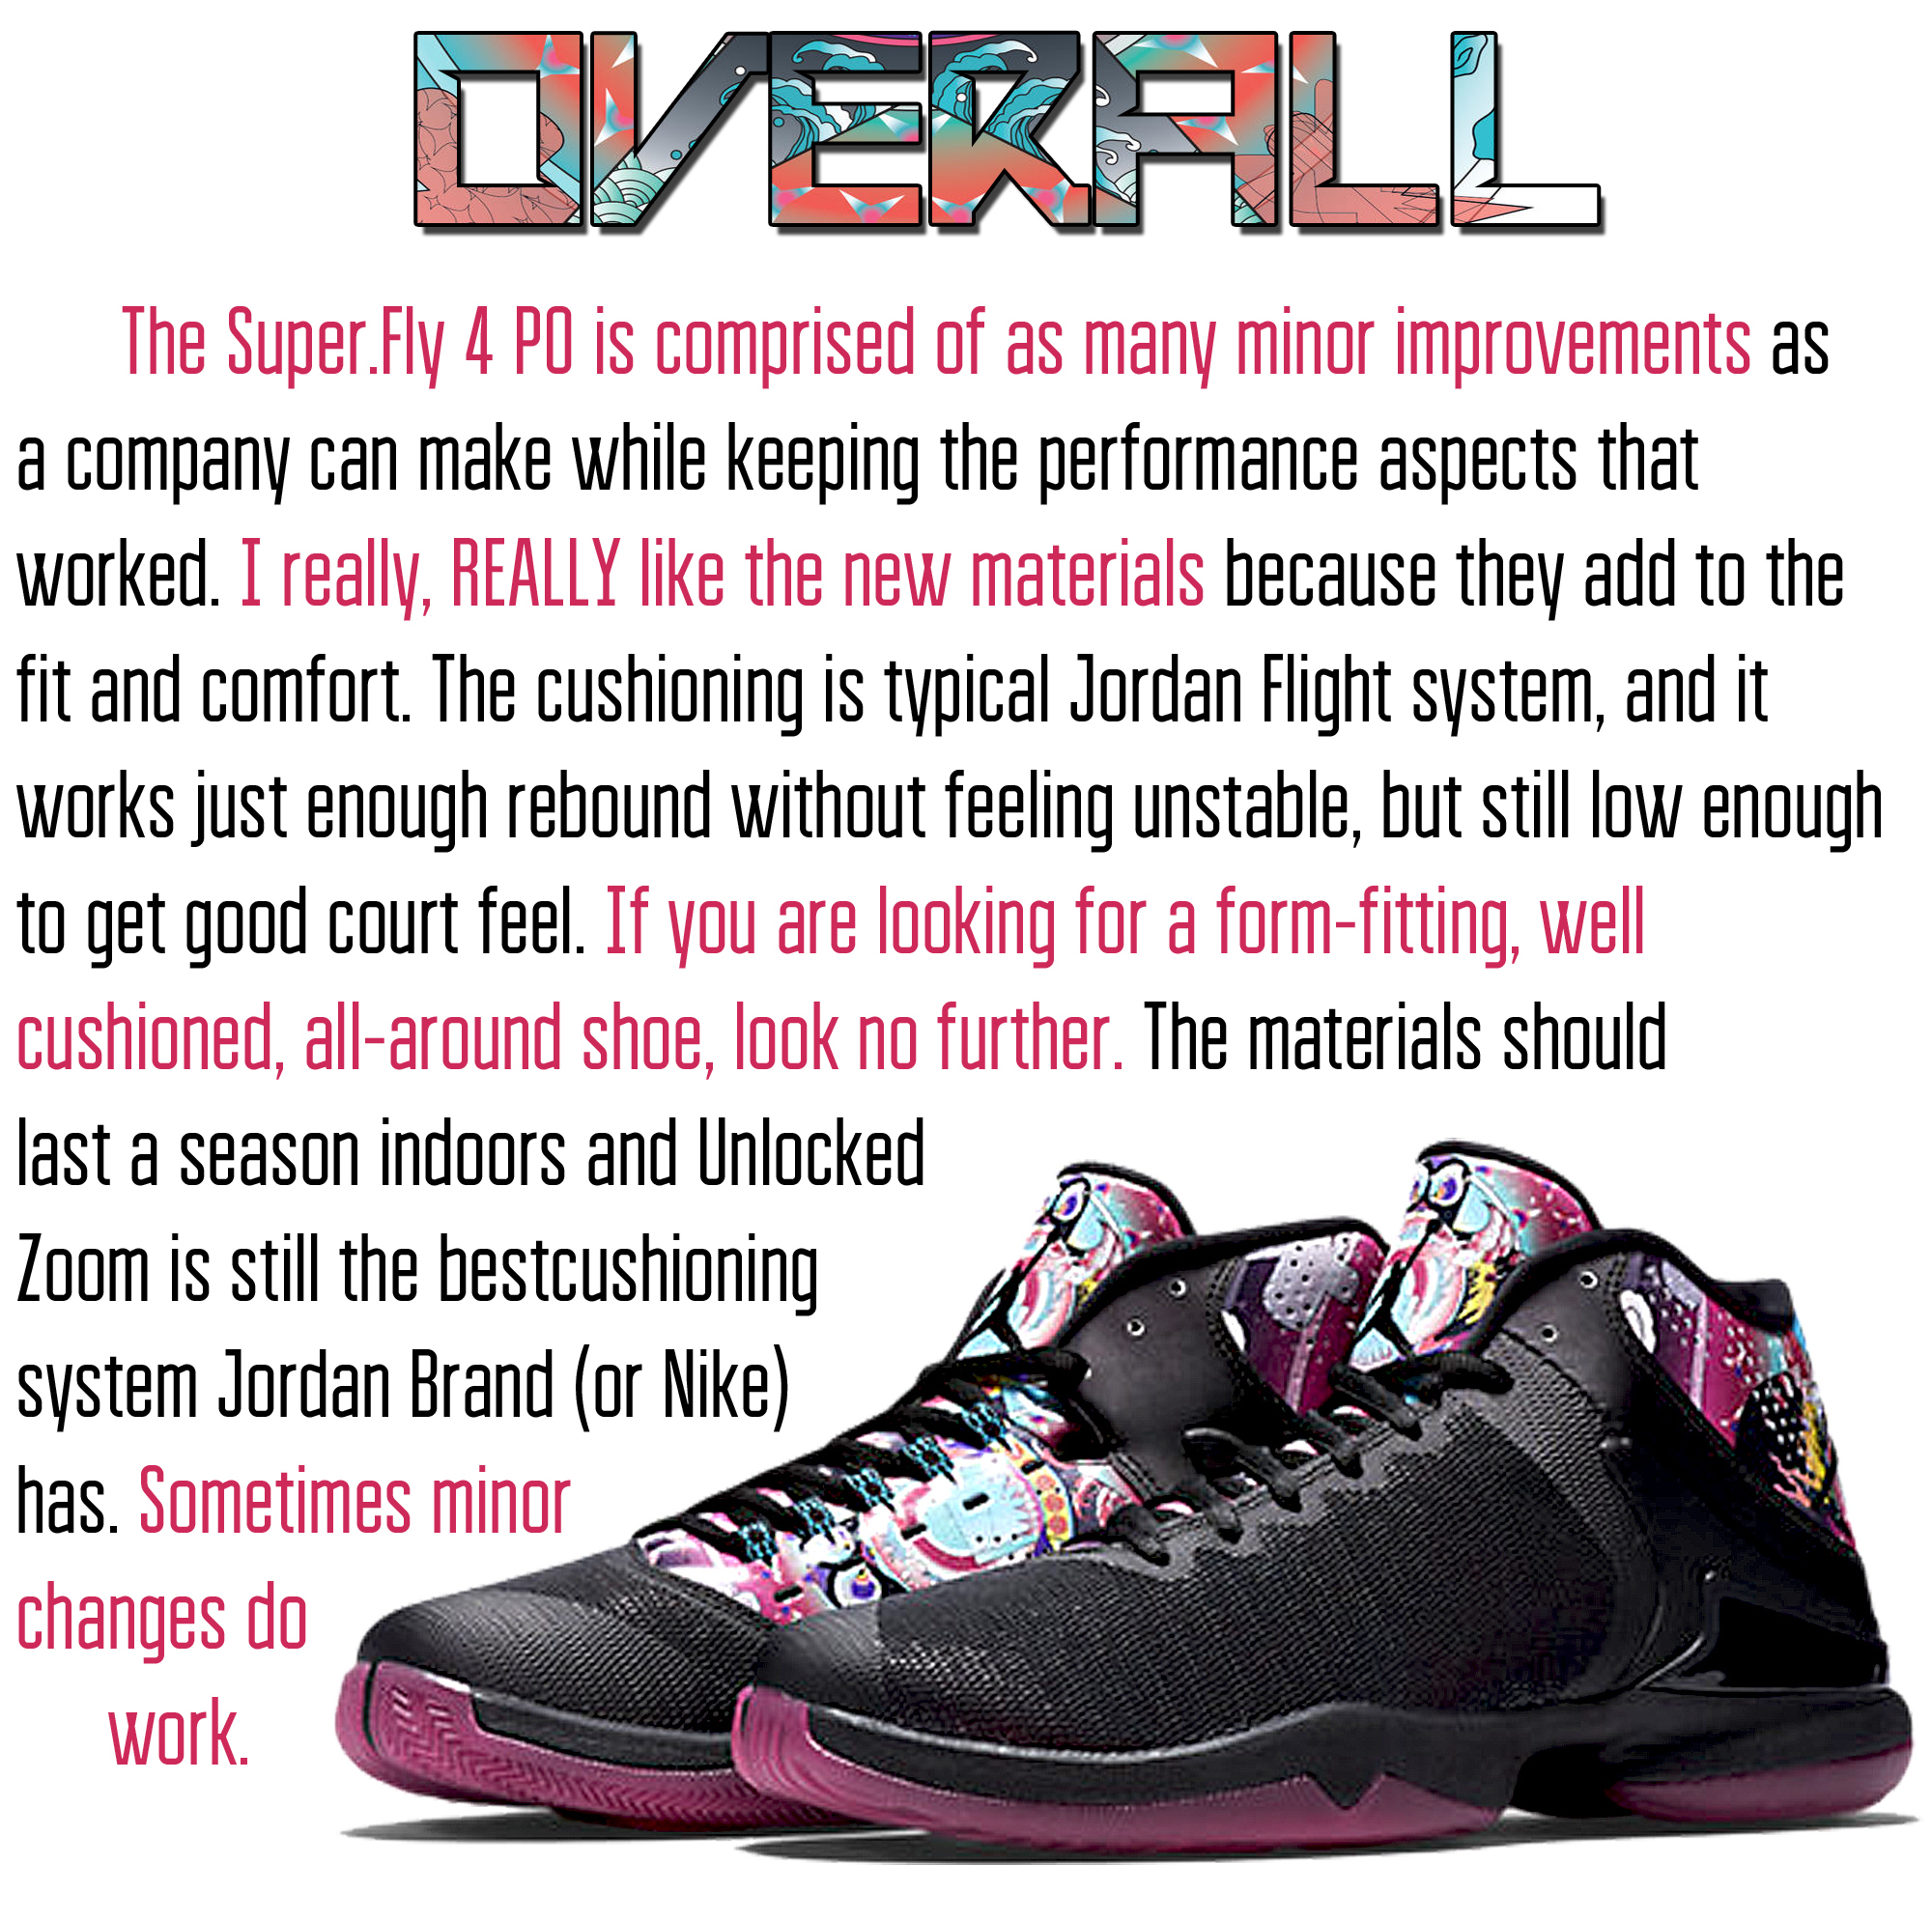 Superfly 4.PO overall